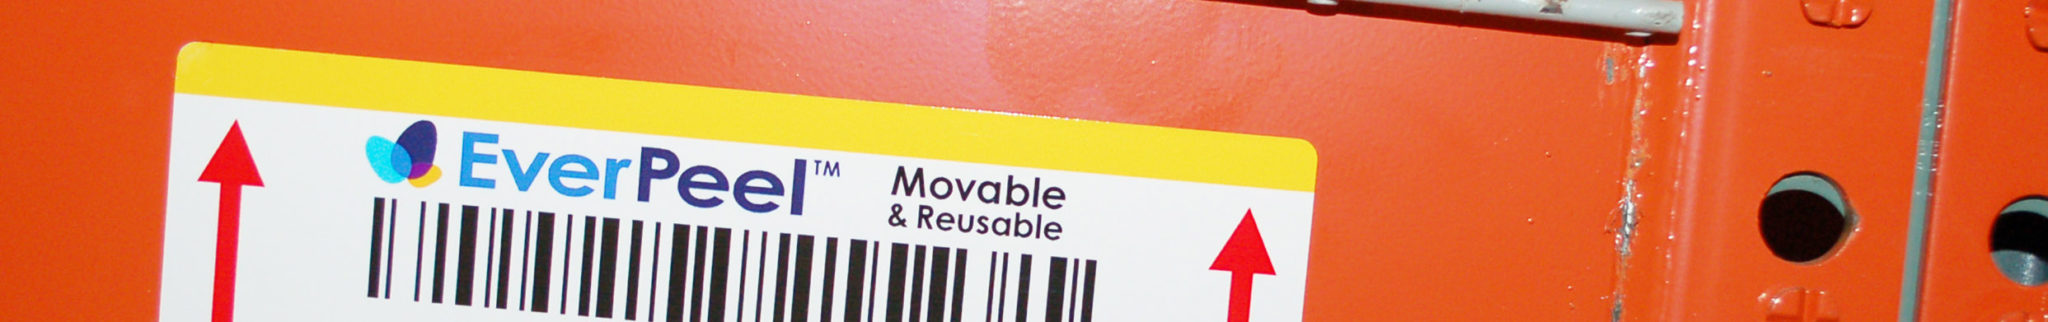 White Barcoded removable and reusable label with barcode and product name affixed to warehouse shelving